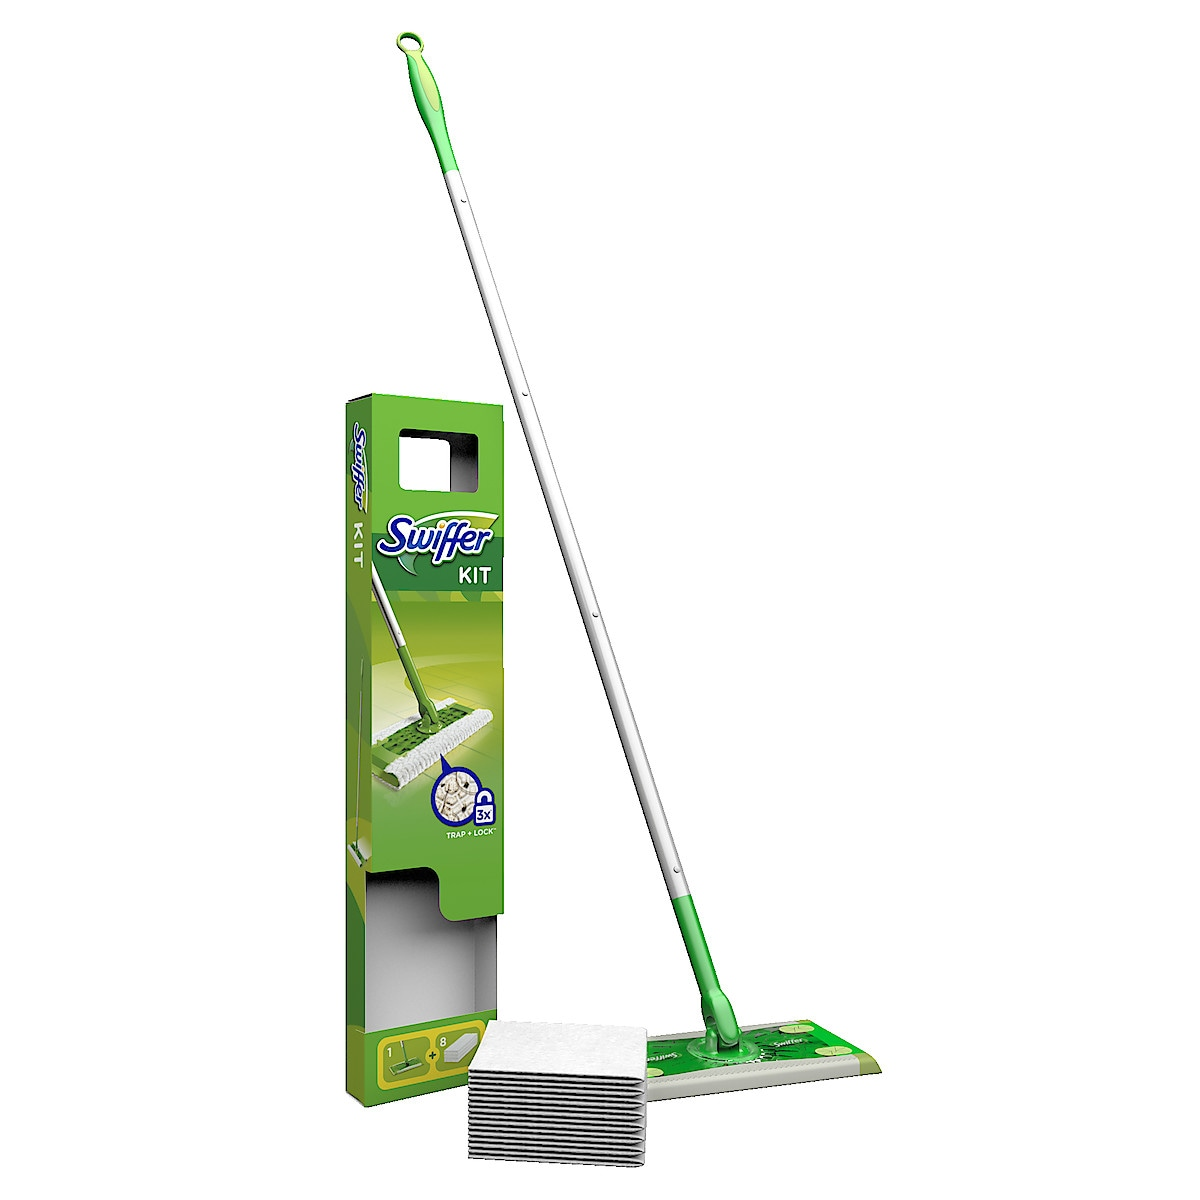 Swiffer Sweeper Starter Kit støvmopp